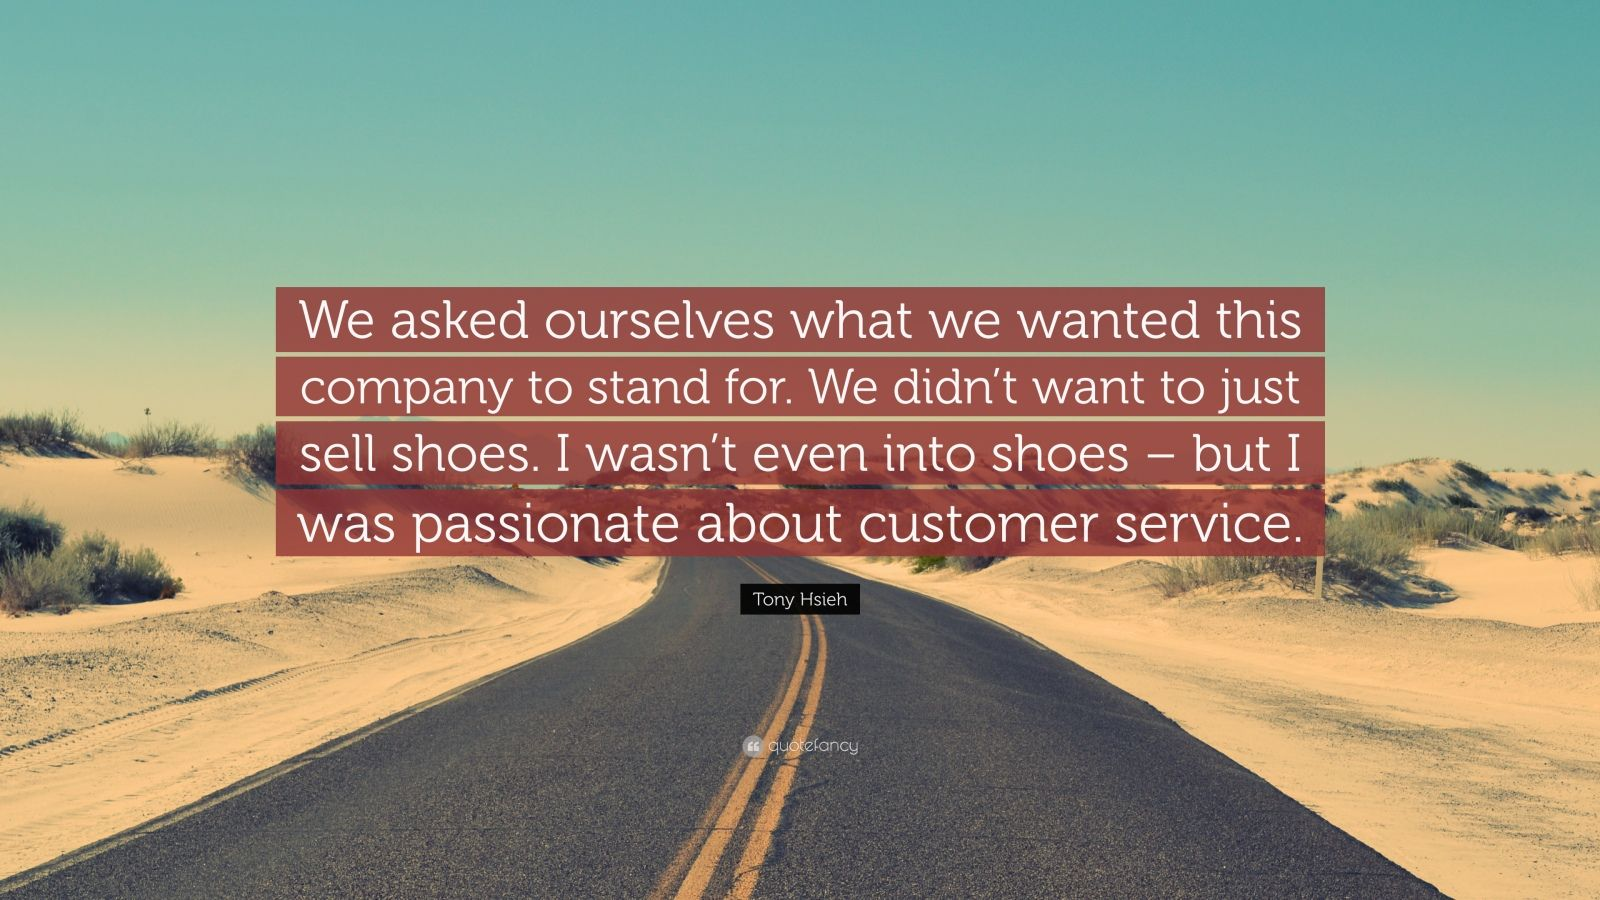 """Tony Hsieh Quote: """"We asked ourselves what we wanted this company to stand for. We didn't want to just sell shoes. I wasn't even into shoes – but I was passionate about customer service."""""""